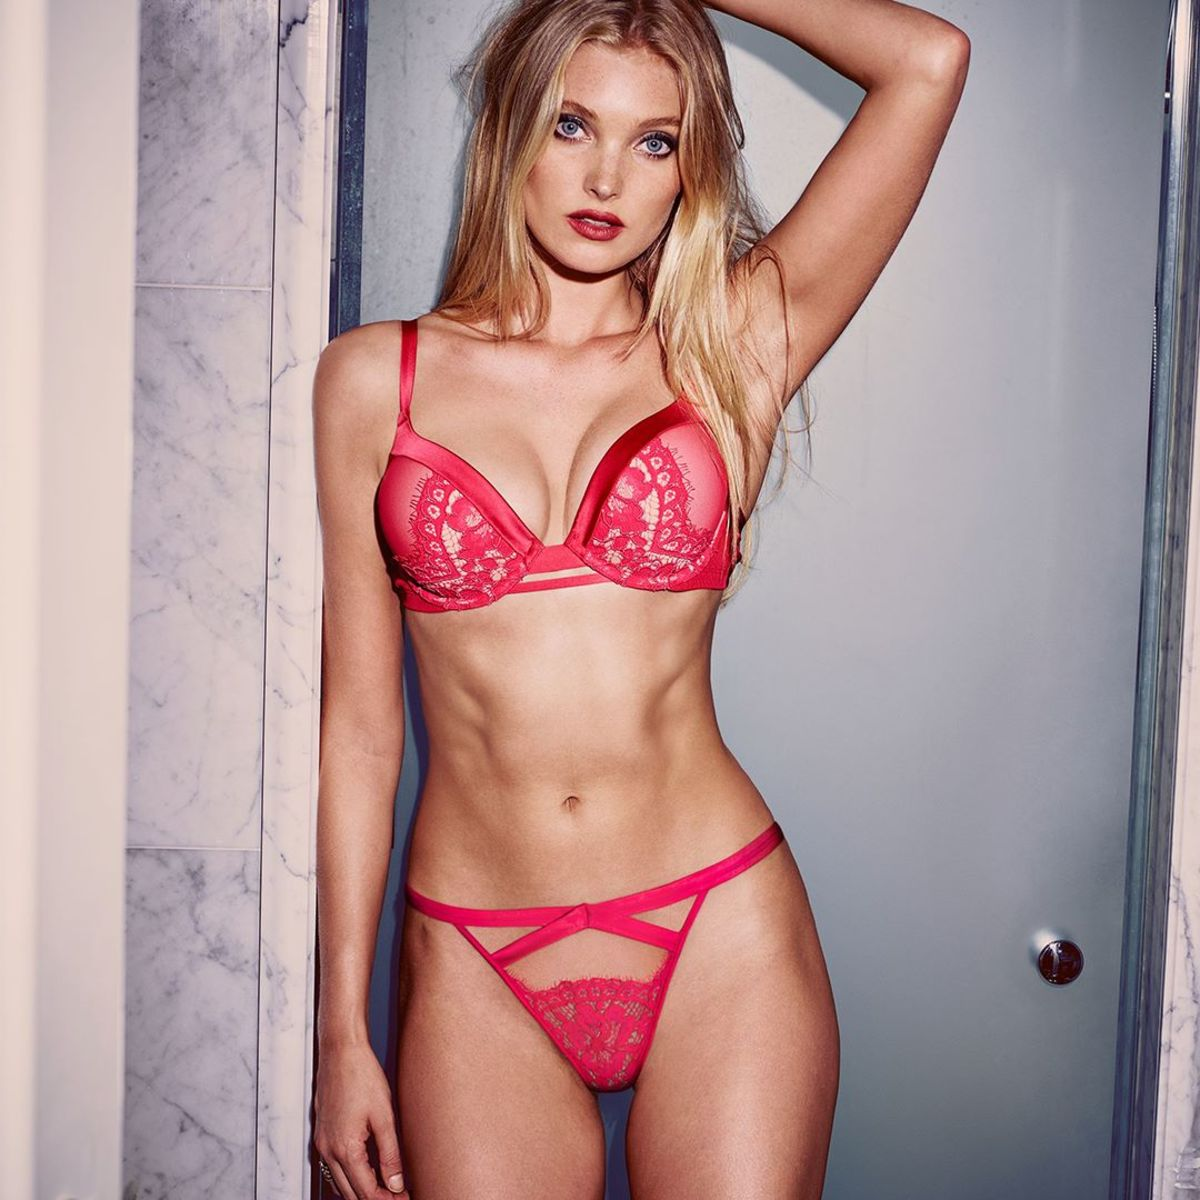 2019 Elsa Hosk hot nude photos 2019